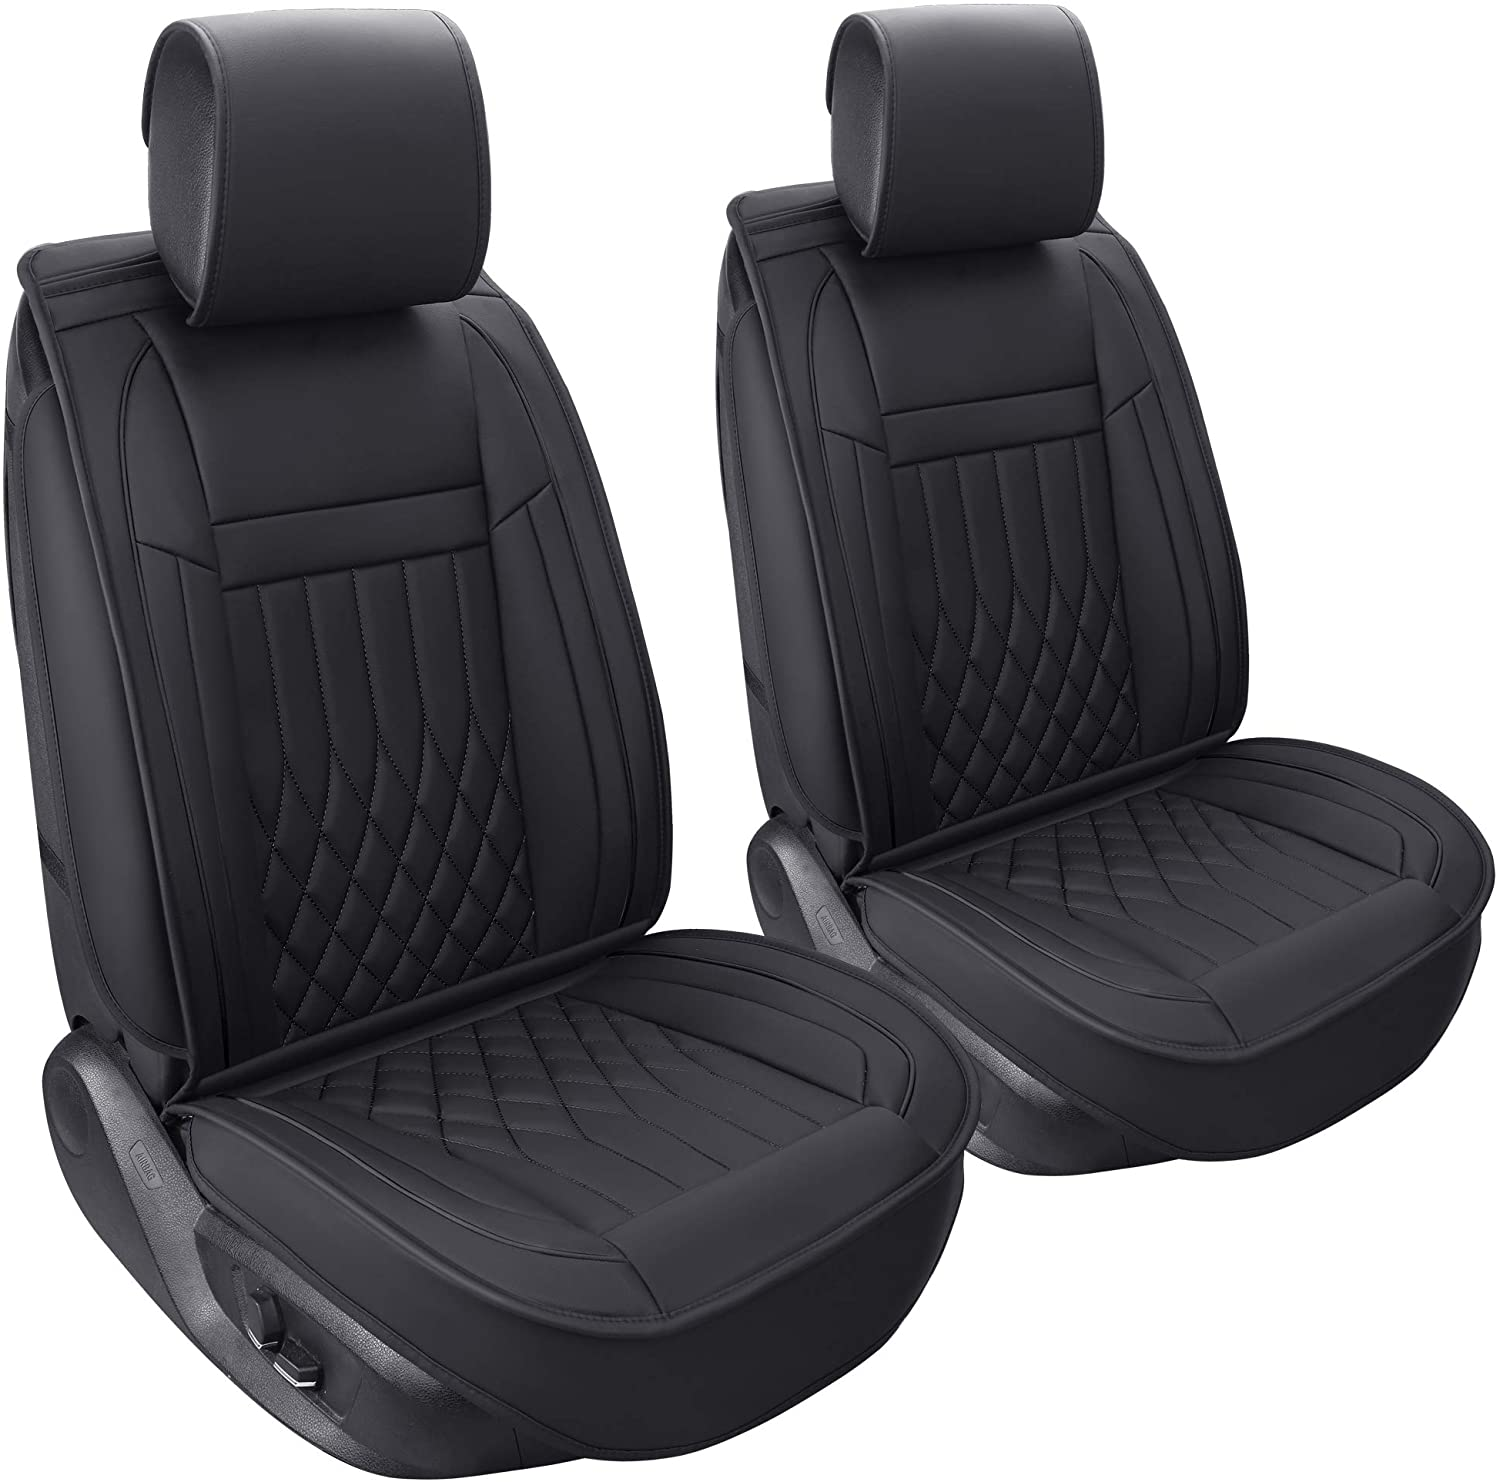 Aierxuan 2pcs Car Seat Award Ranking TOP19 Covers Set Front Leather with Waterproof